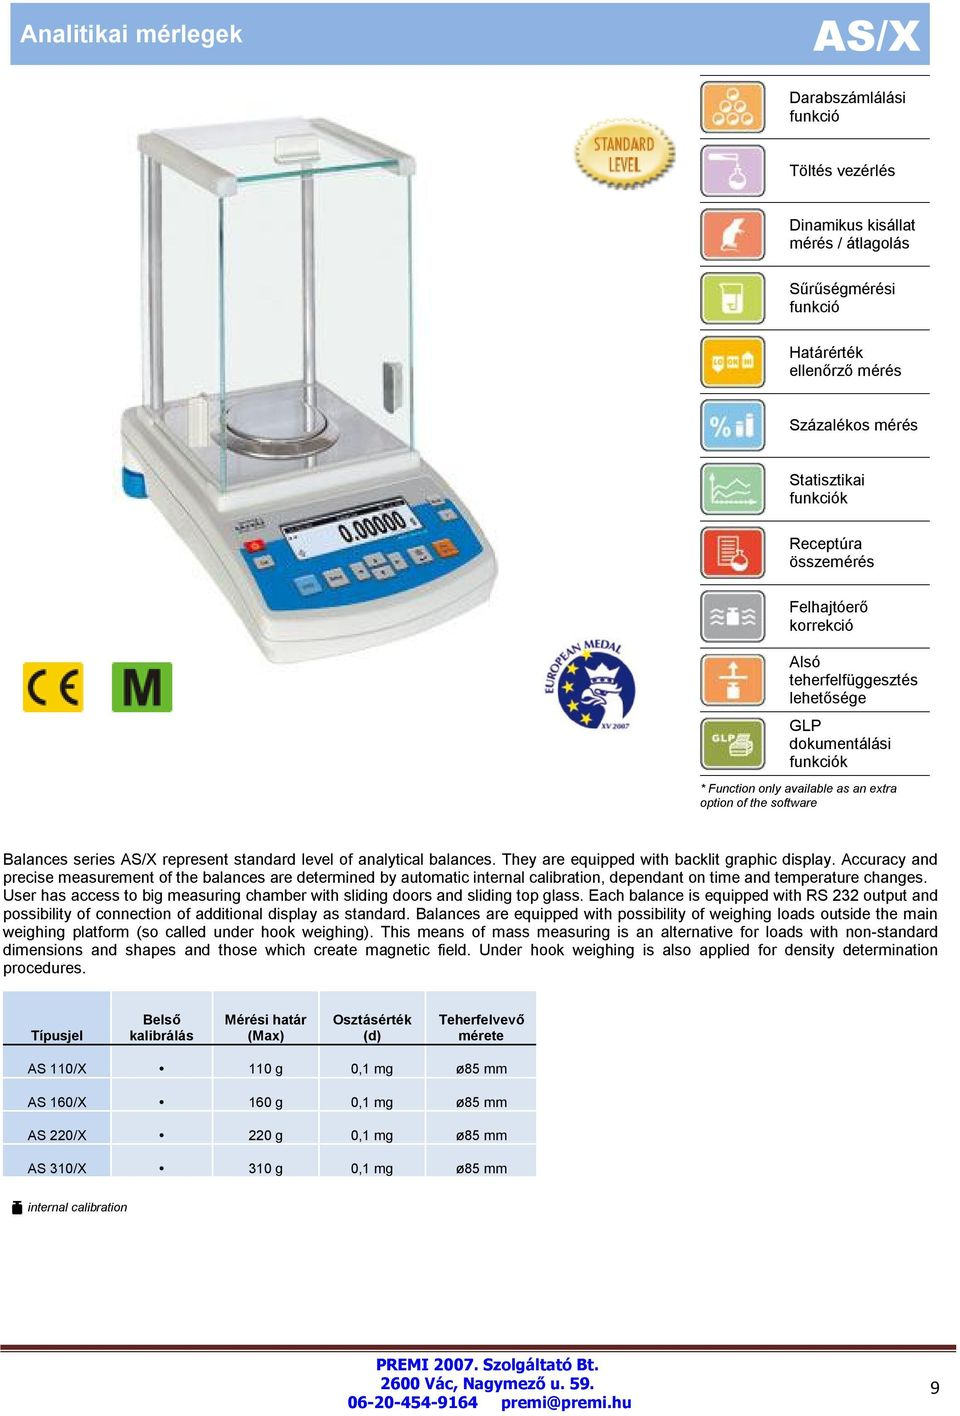 Accuracy and precise measurement of the balances are determined by automatic, dependant on time and temperature changes.